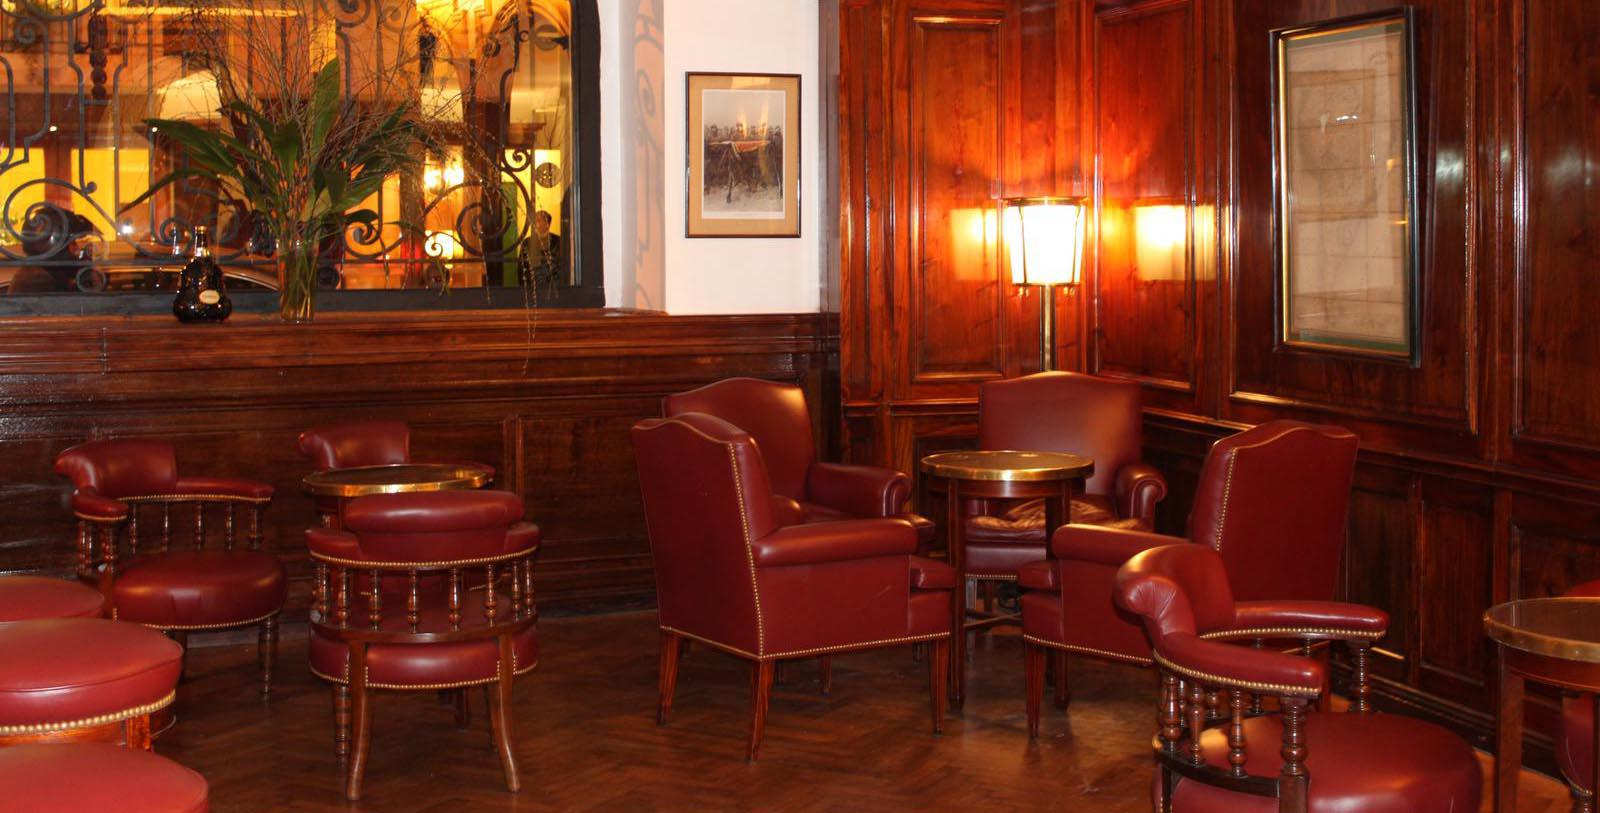 Image of Lobby Seating, Hotel Club Francés Buenos Aires, Argentina, 1866, Member of Historic Hotels Worldwide, Overview